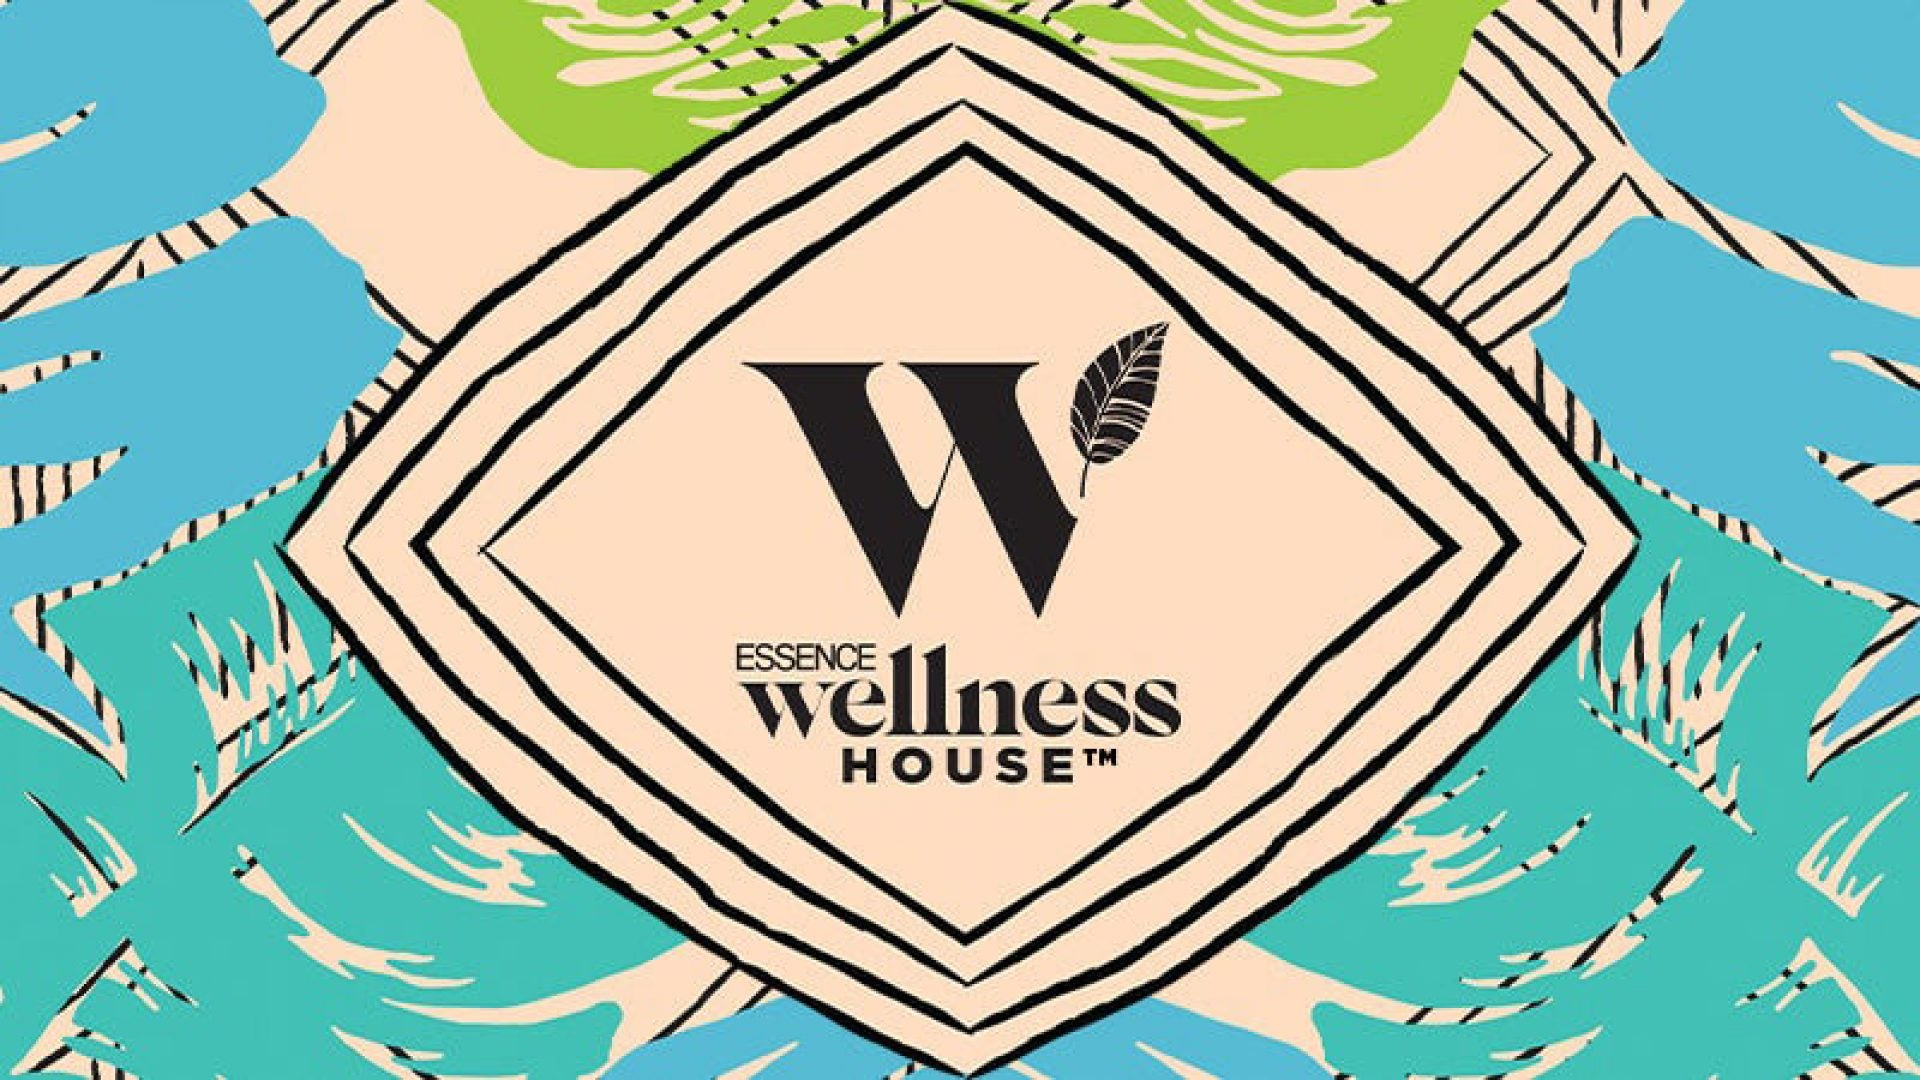 ESSENCE Wellness House: A List Of Over 20 Black Health & Wellness Experts Who Will Be In The Building